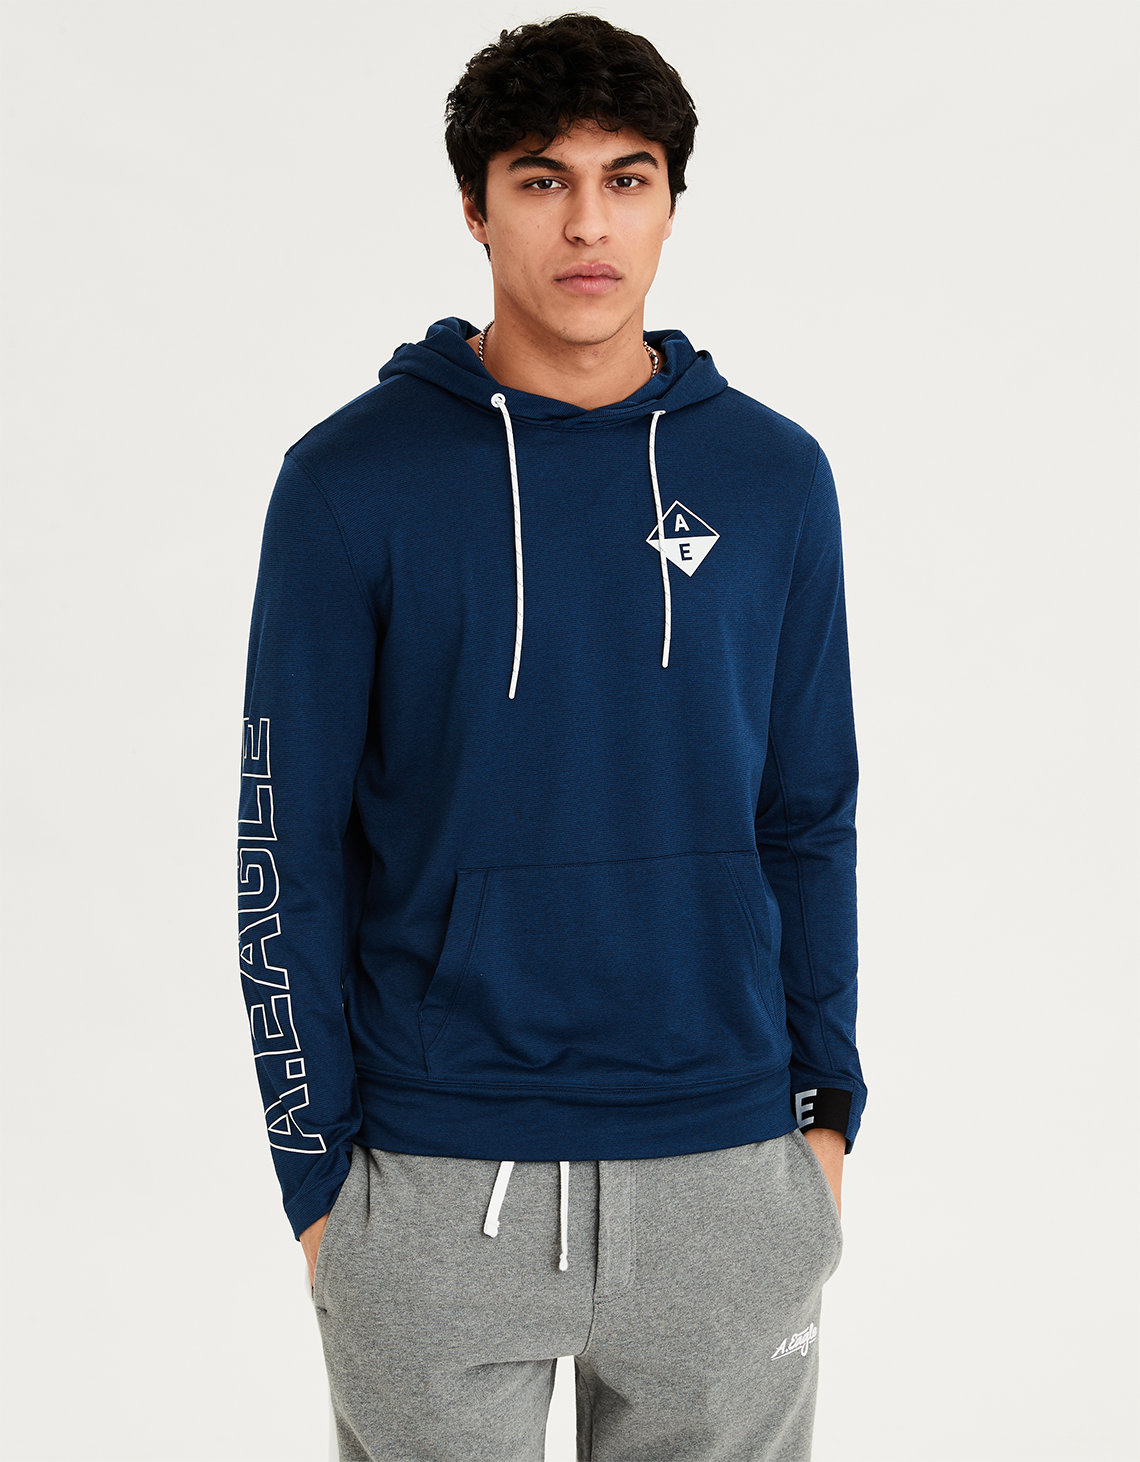 df45a9e4550 AE Graphic Pullover Hoodie Tee. Placeholder image. Product Image